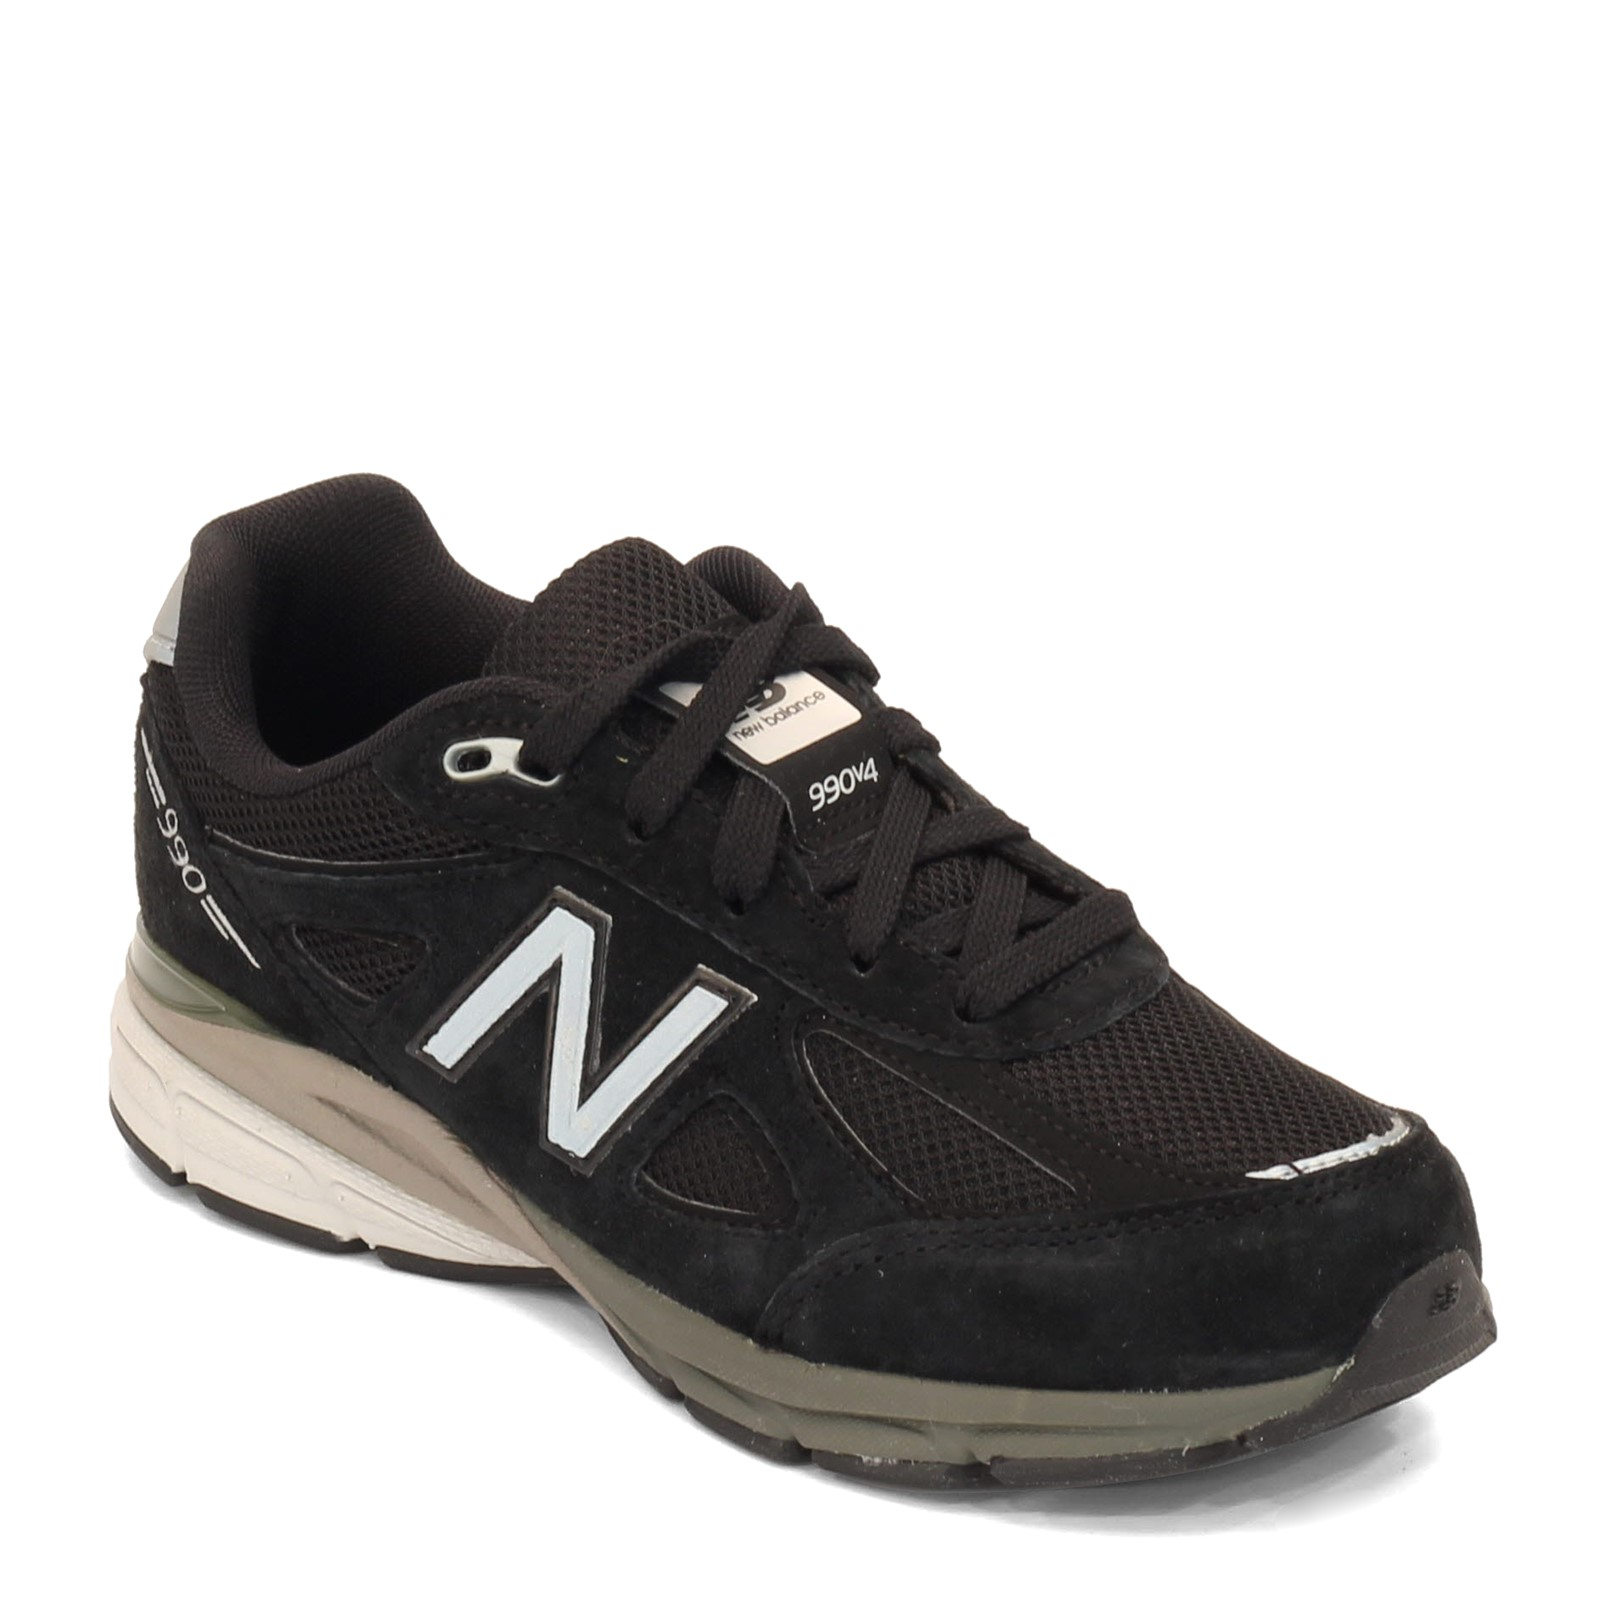 watch f3419 aa998 Boy's New Balance, 990 v4 Athletic Sneaker - Little Kid